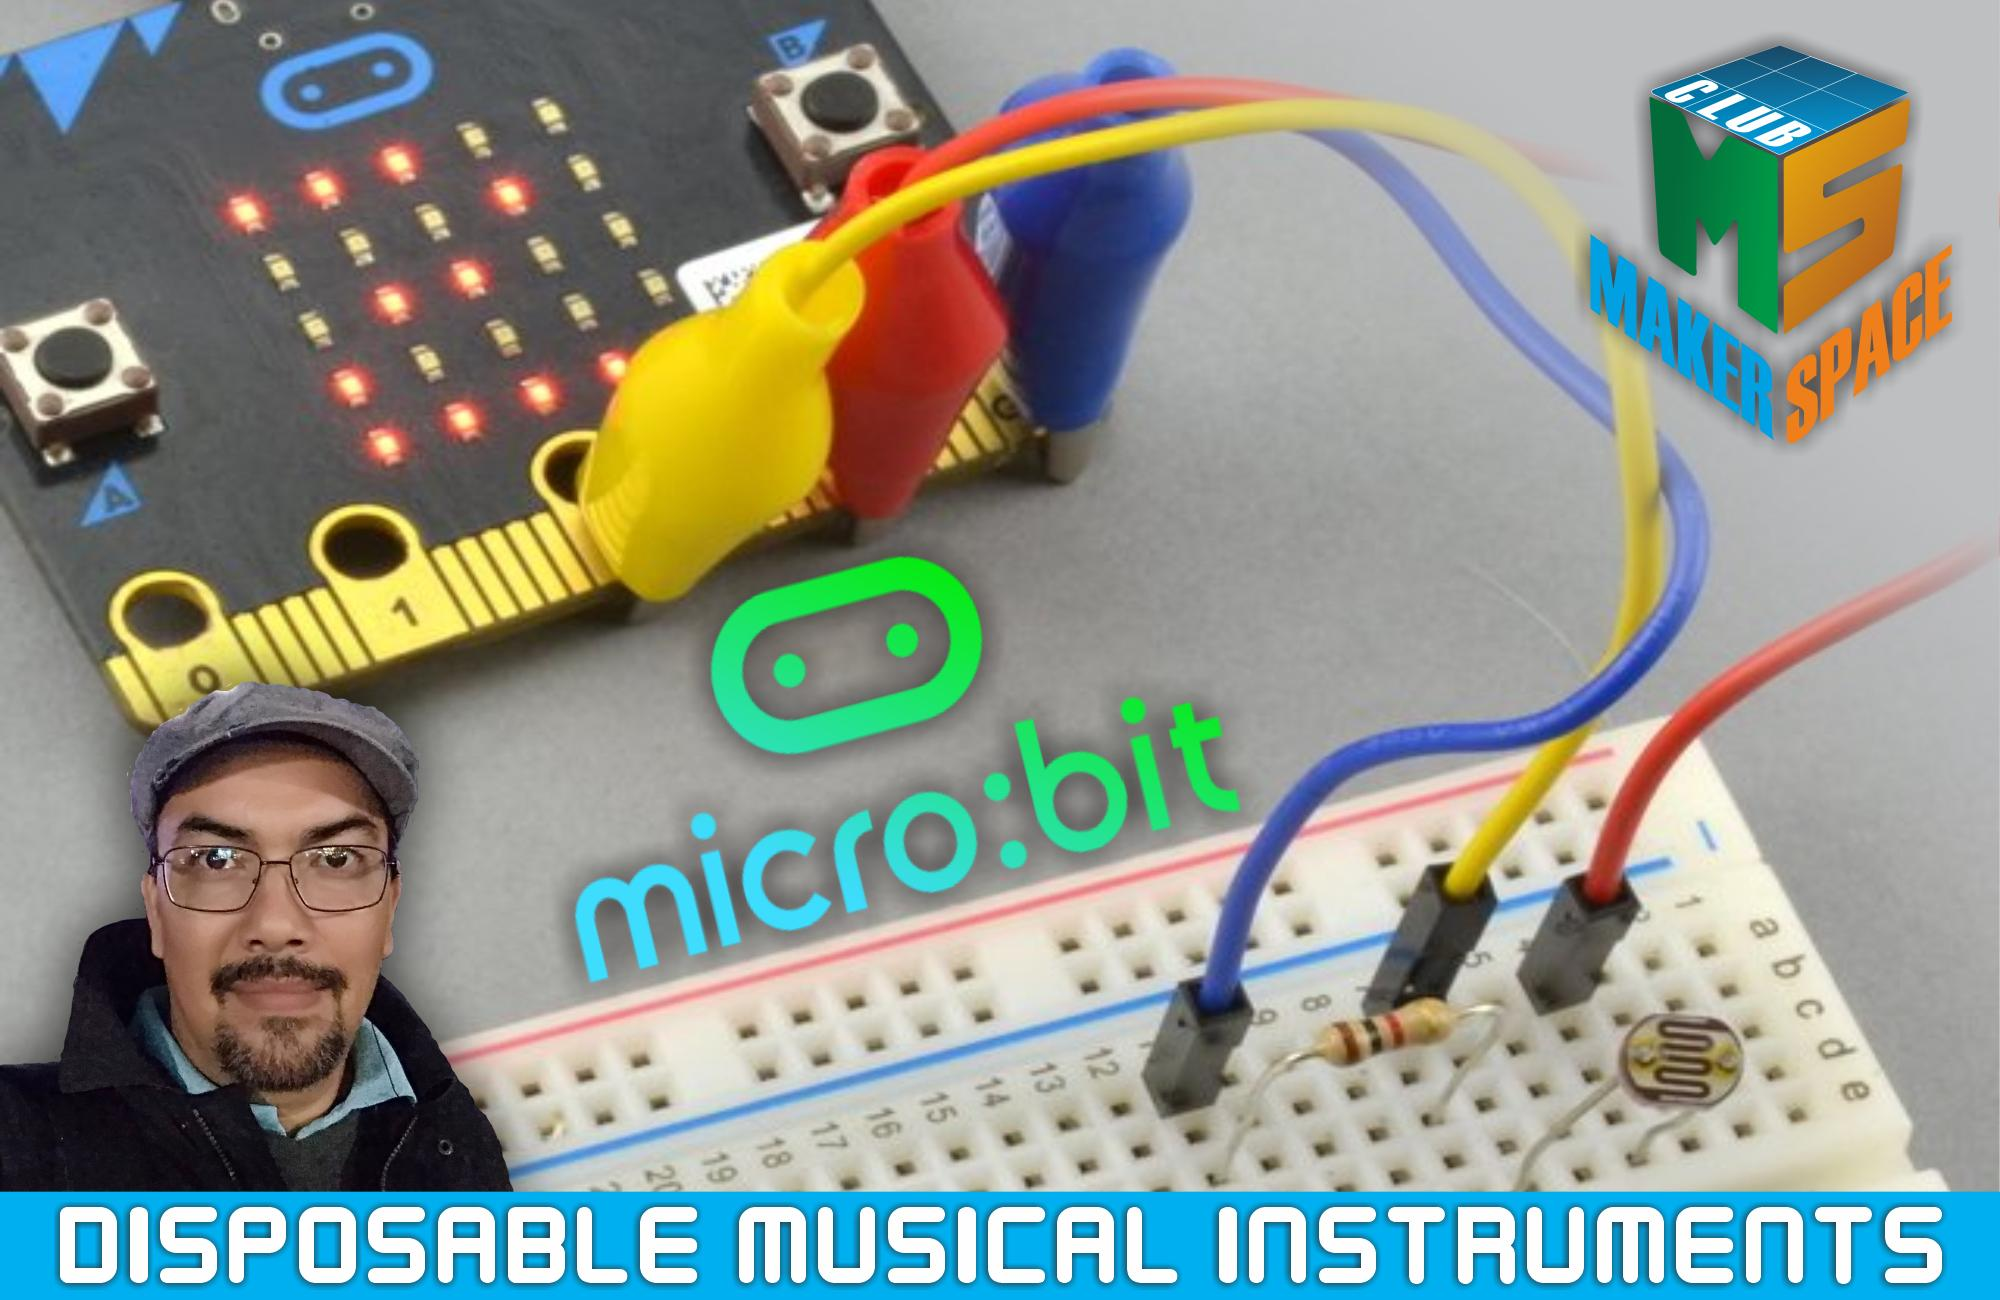 Disposable musical instruments with Micro:Bit